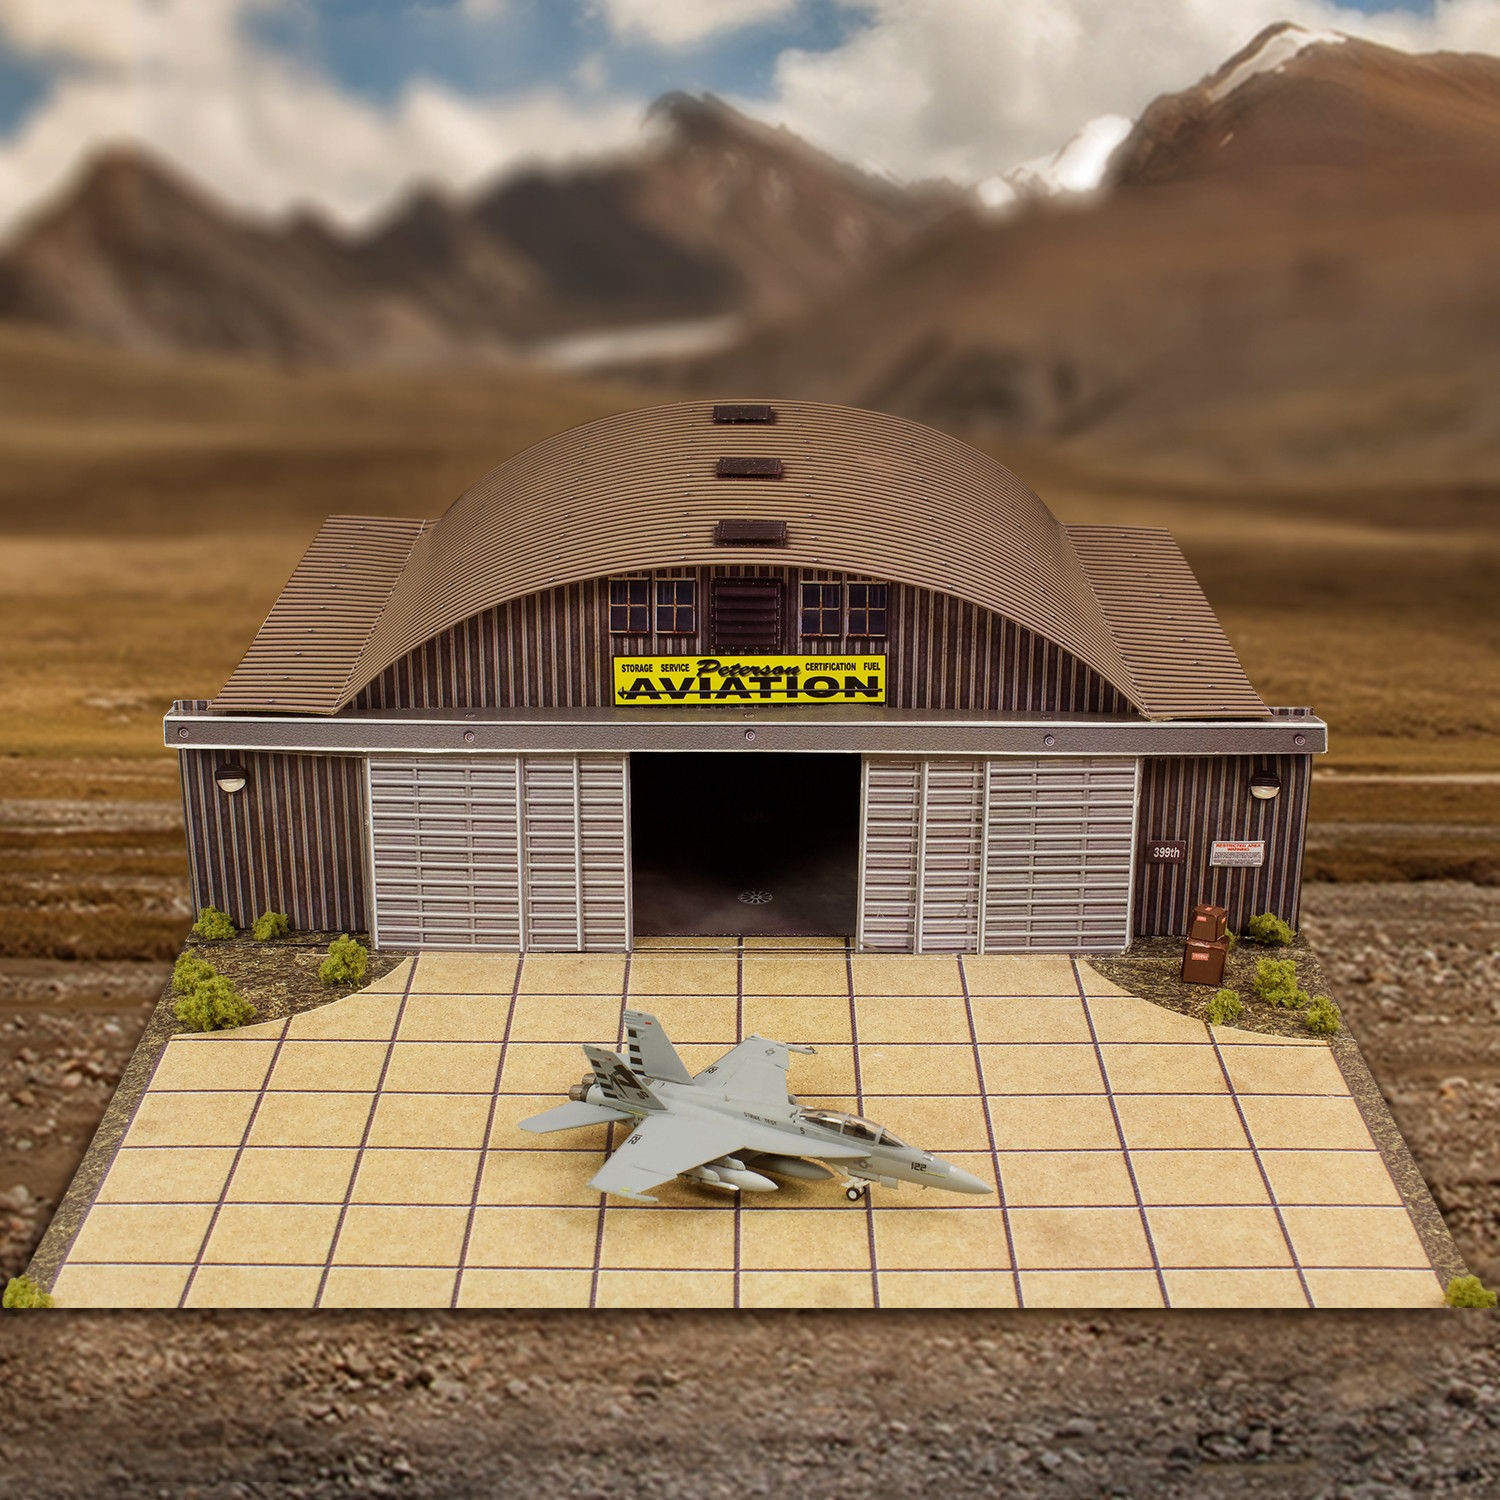 1/72 to 1/200 Aircraft Hangar Photo Real Scale Model Miniature Building Kit